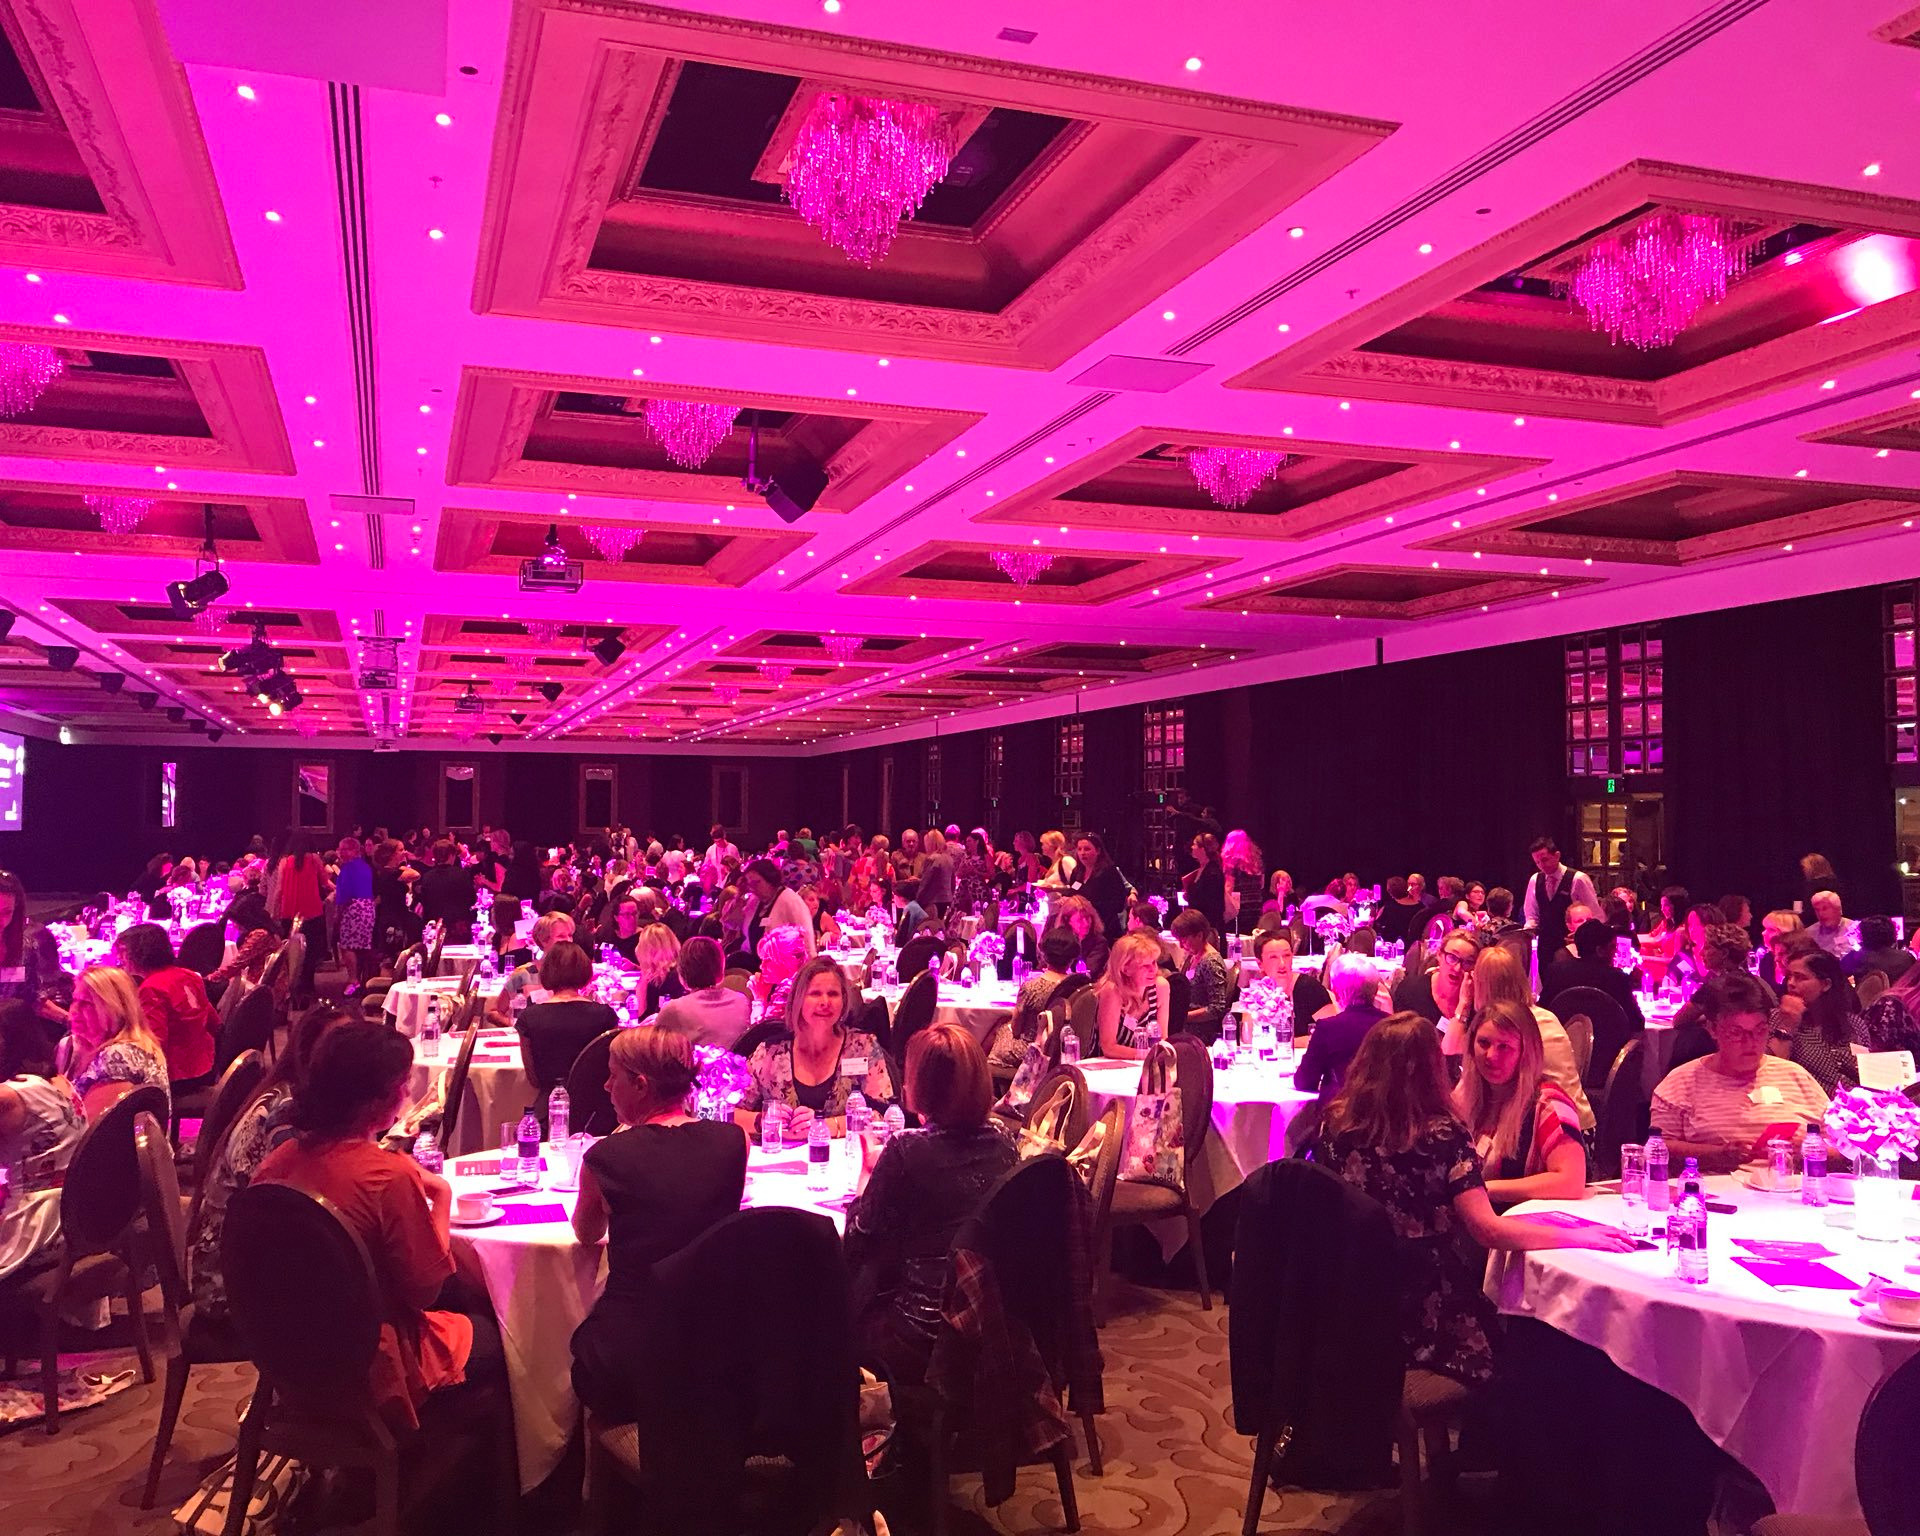 What do 540 women in one leadership conference look like? #stunning #powerful #connected #smart #boldsteps @francesvnz @joan_withers @jacindaardern @PrestigeLaw @IoDNZ